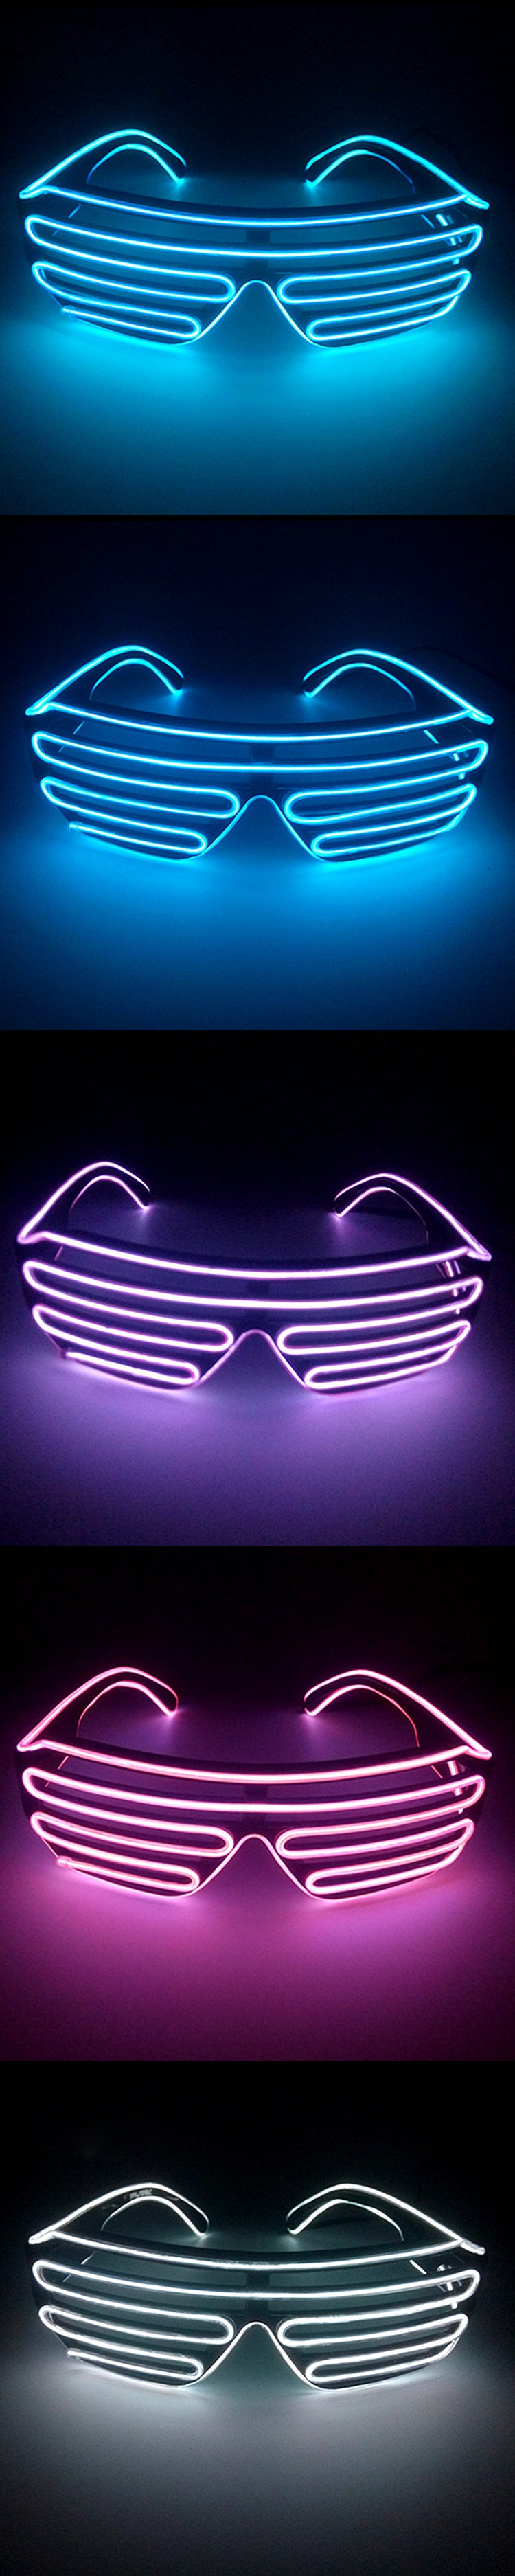 Luminescent glasses